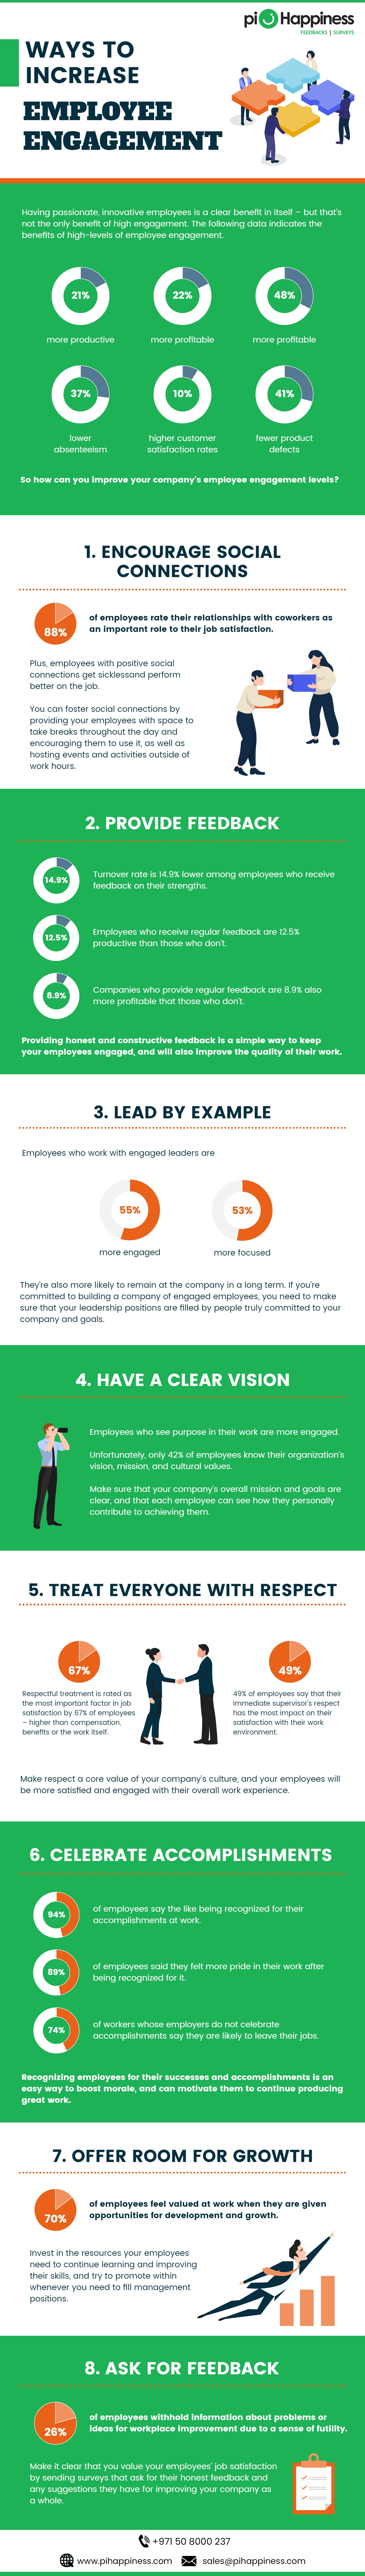 Ways to Plan Employee Engagement During the COVID-19 Pandemic [Infographic]